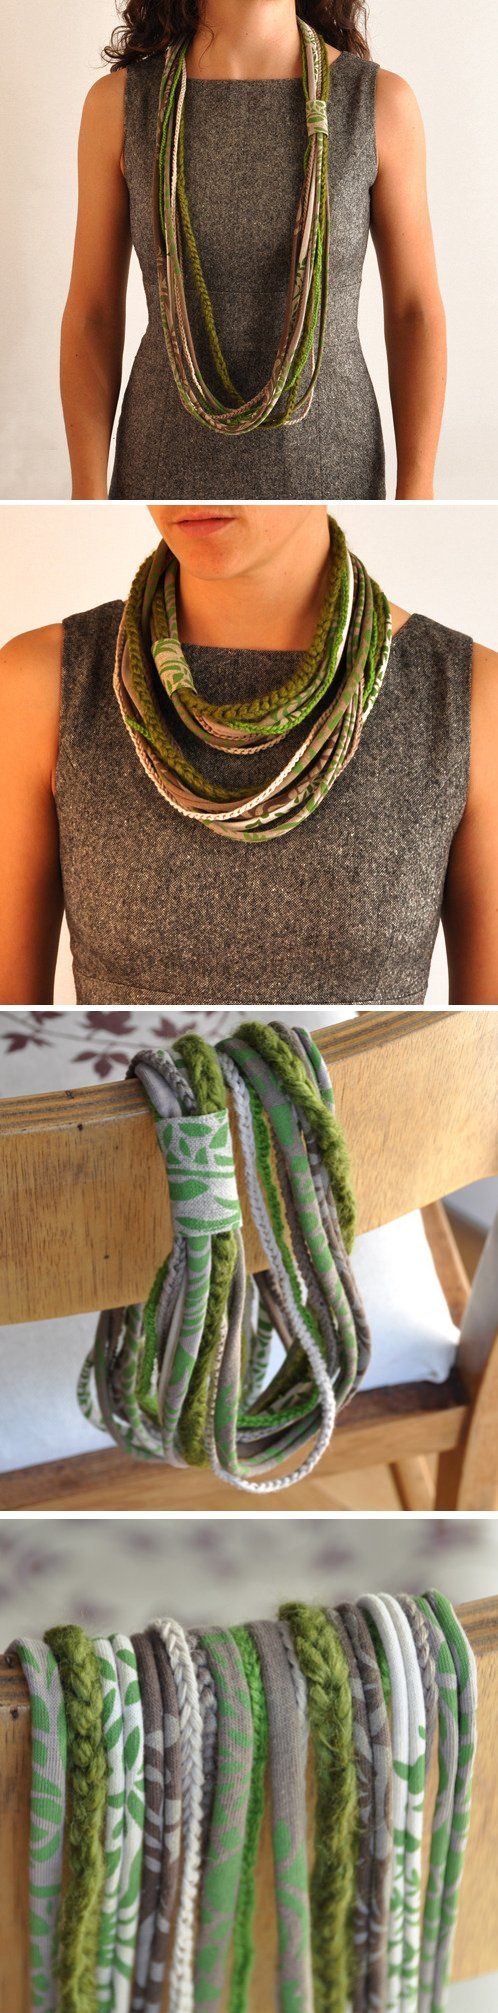 Green multi loop necklace- Combines crocheting and sewing *Inspiration*